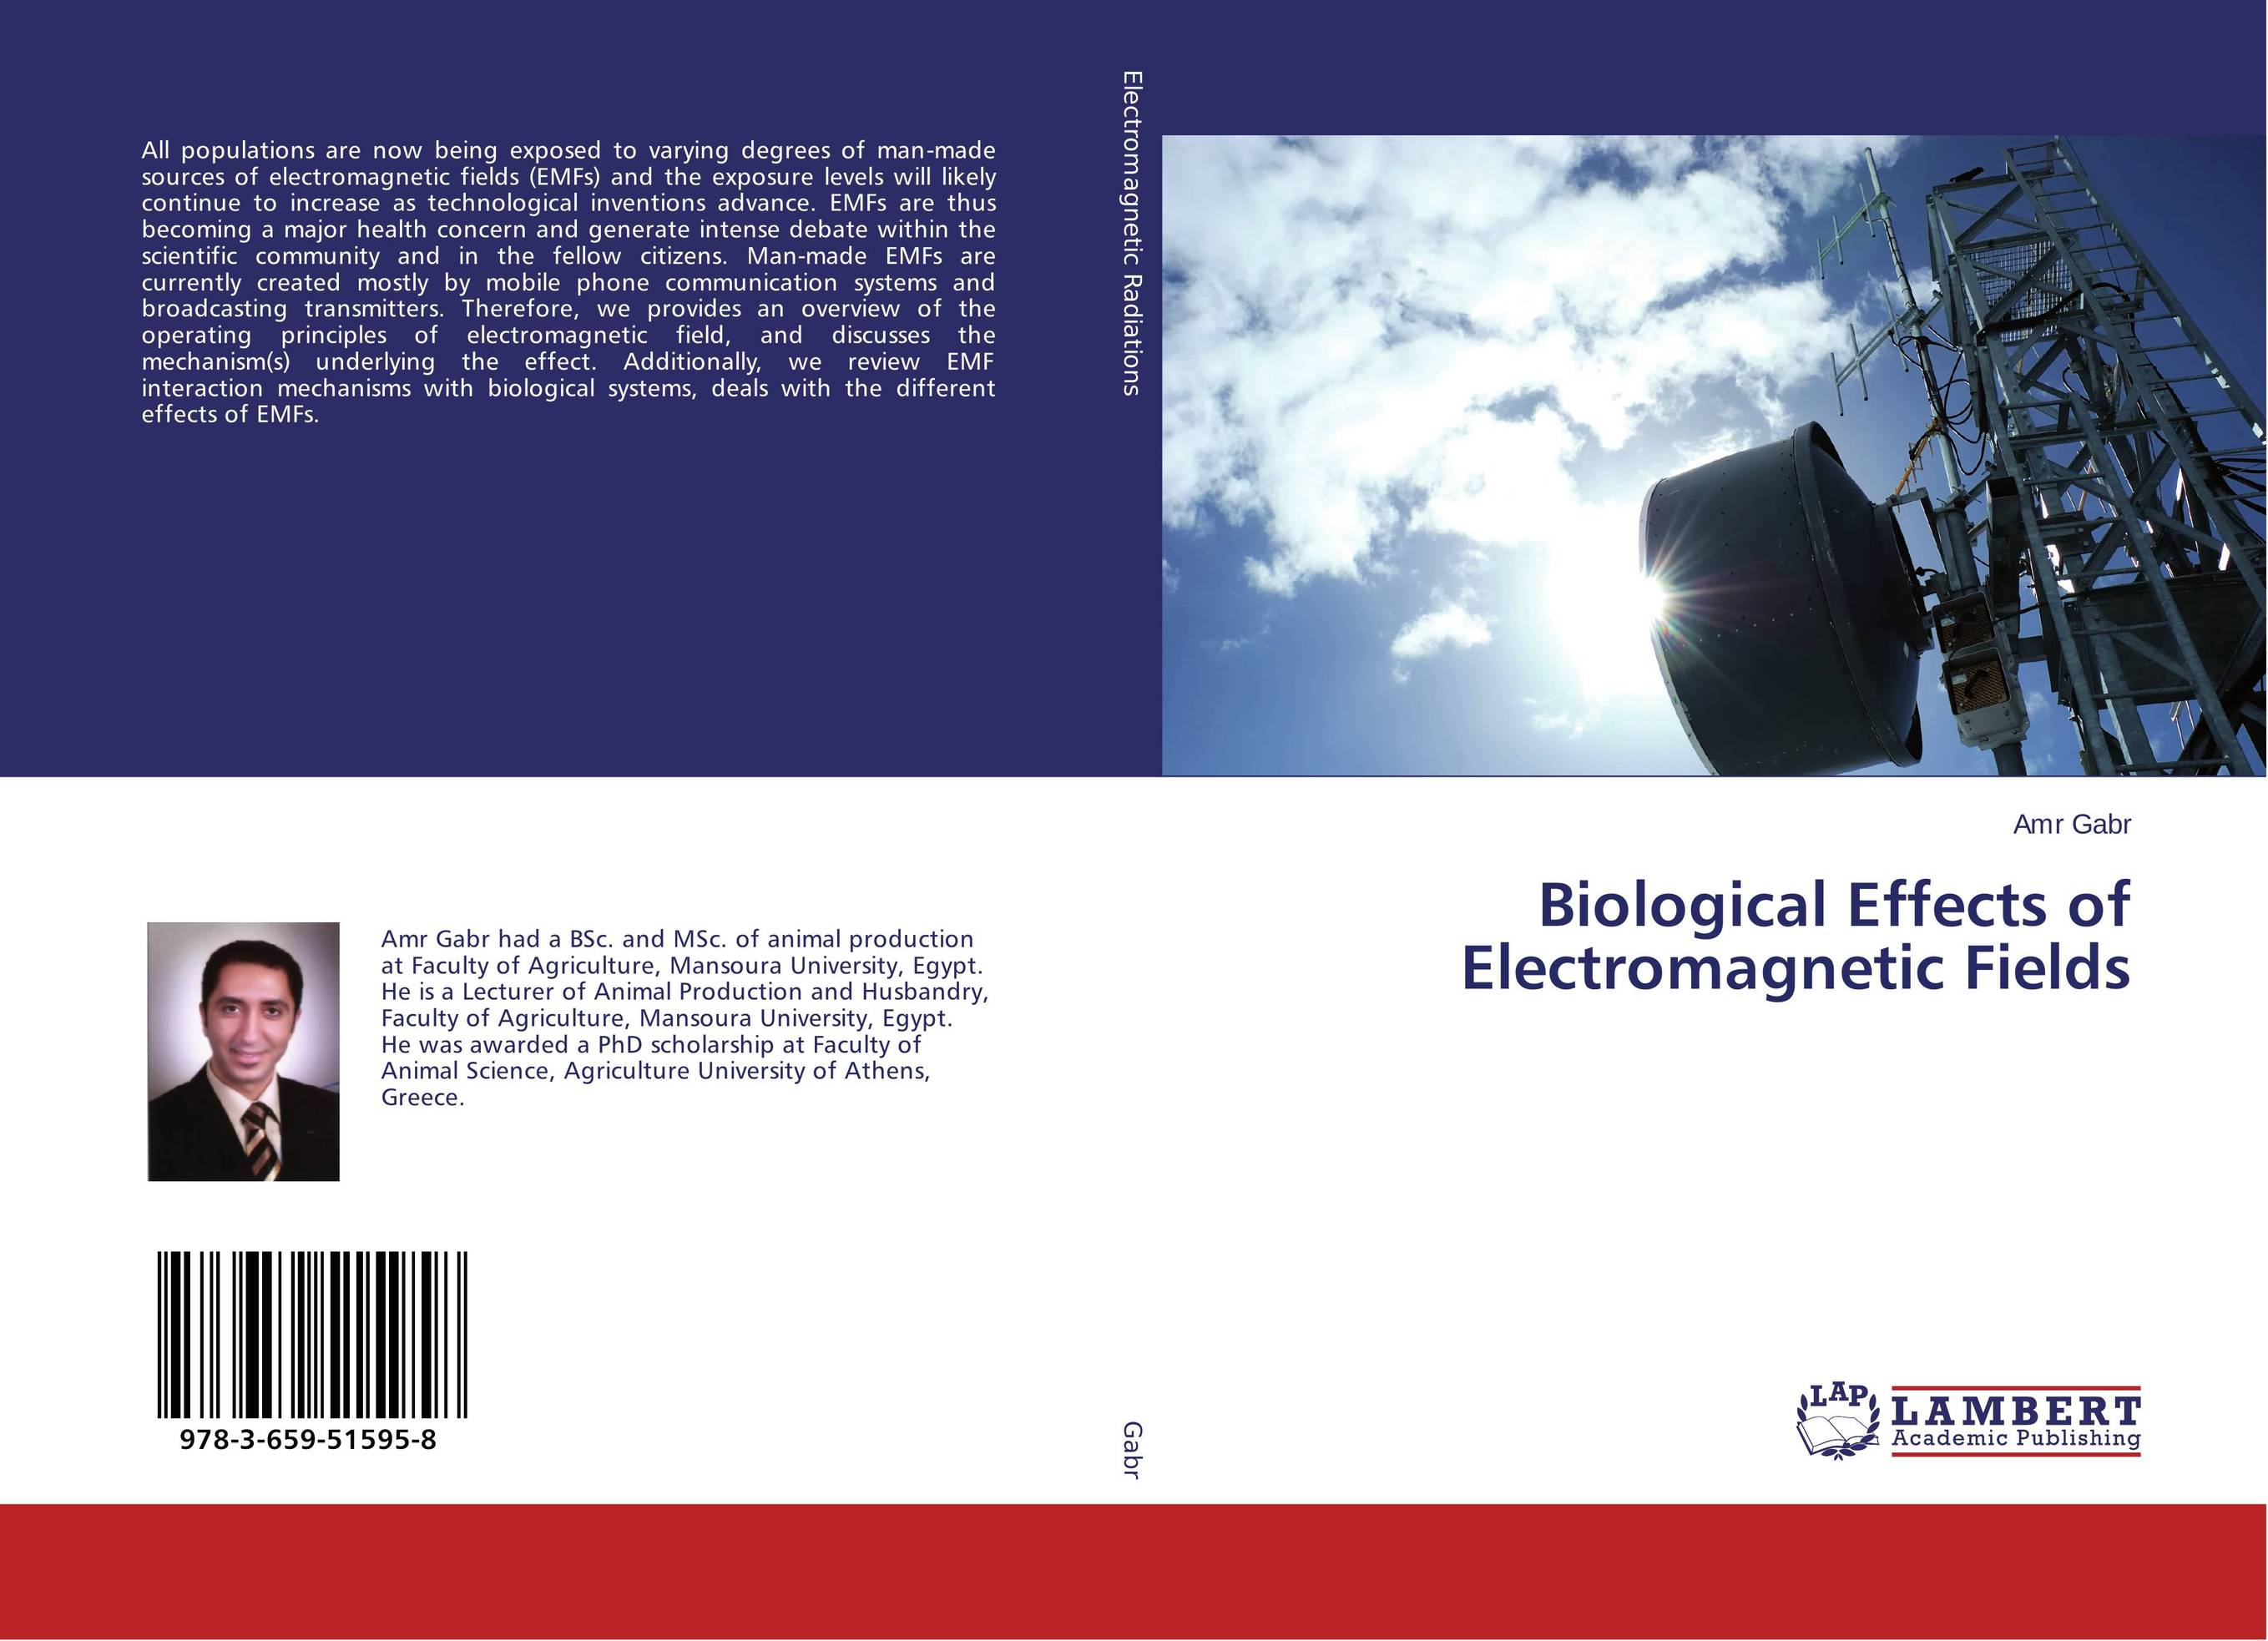 Biological Effects of Electromagnetic Fields uniform formula of interaction of fields and bodie